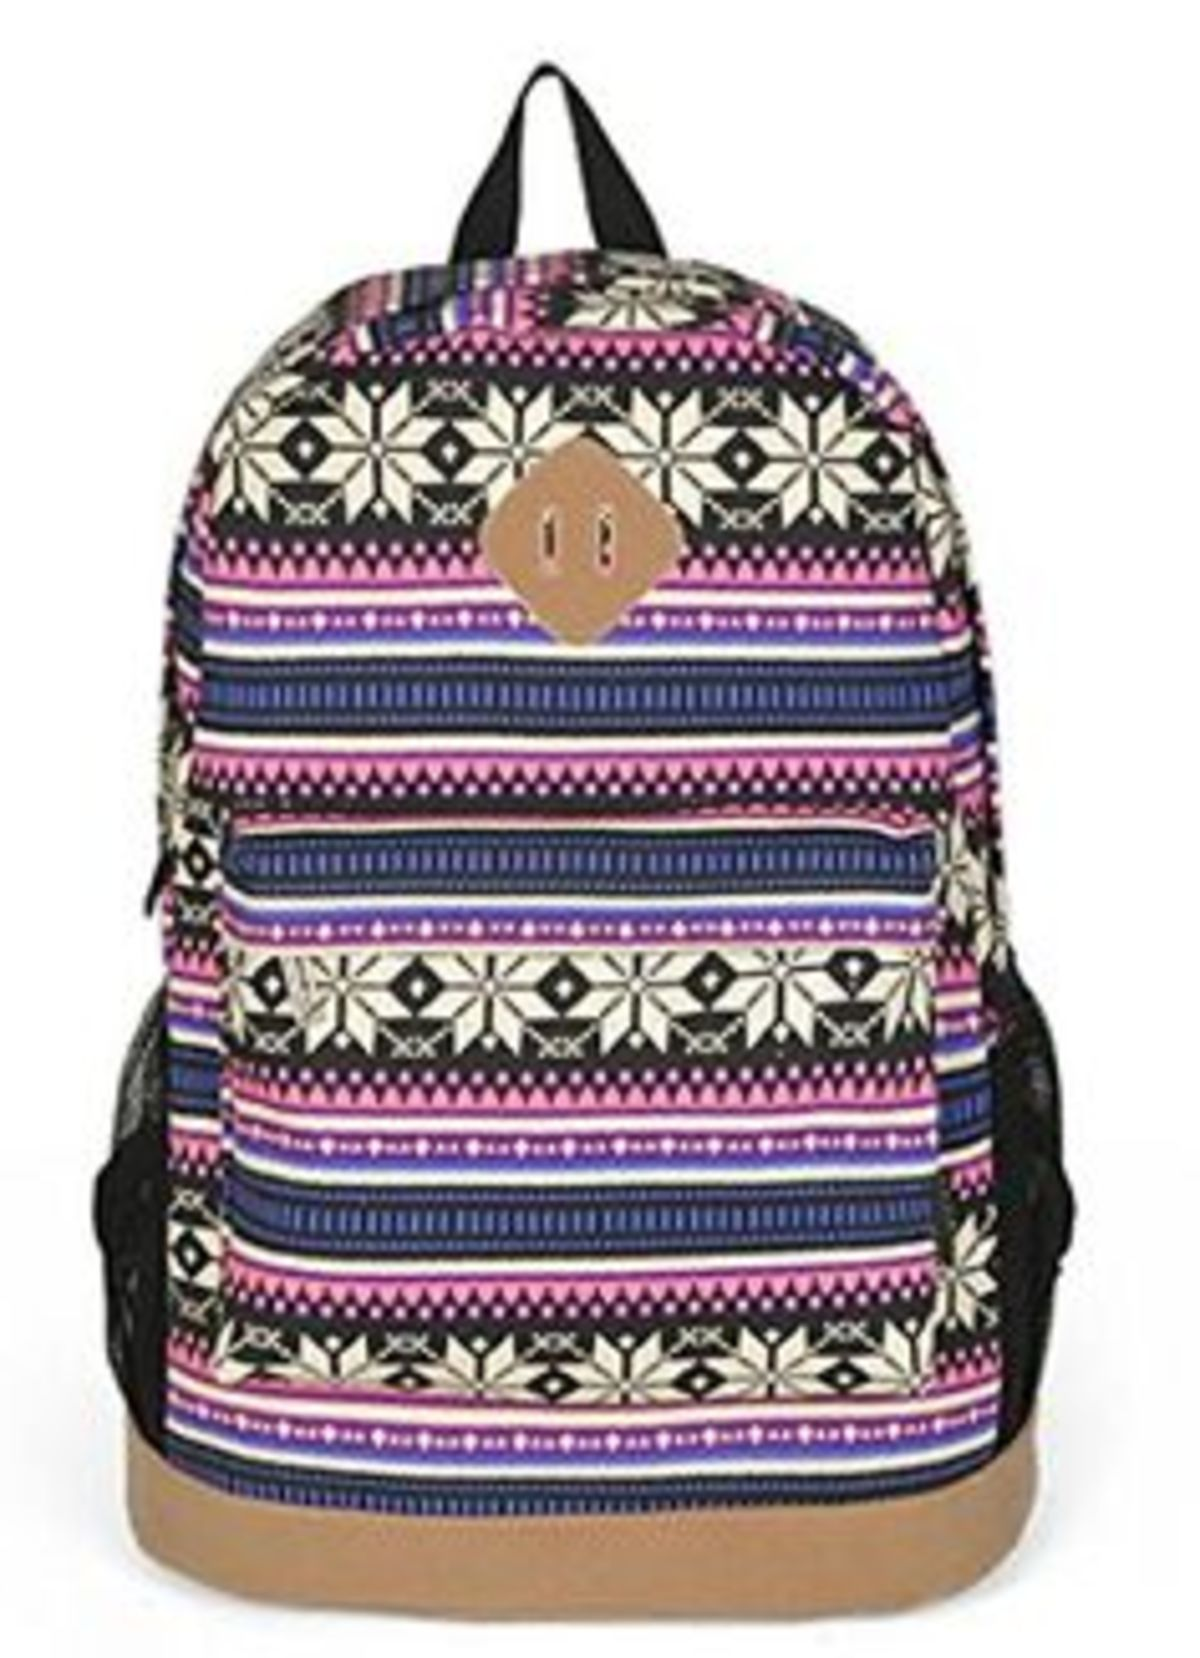 Coolest Backpacks For Girls - Backpack Her